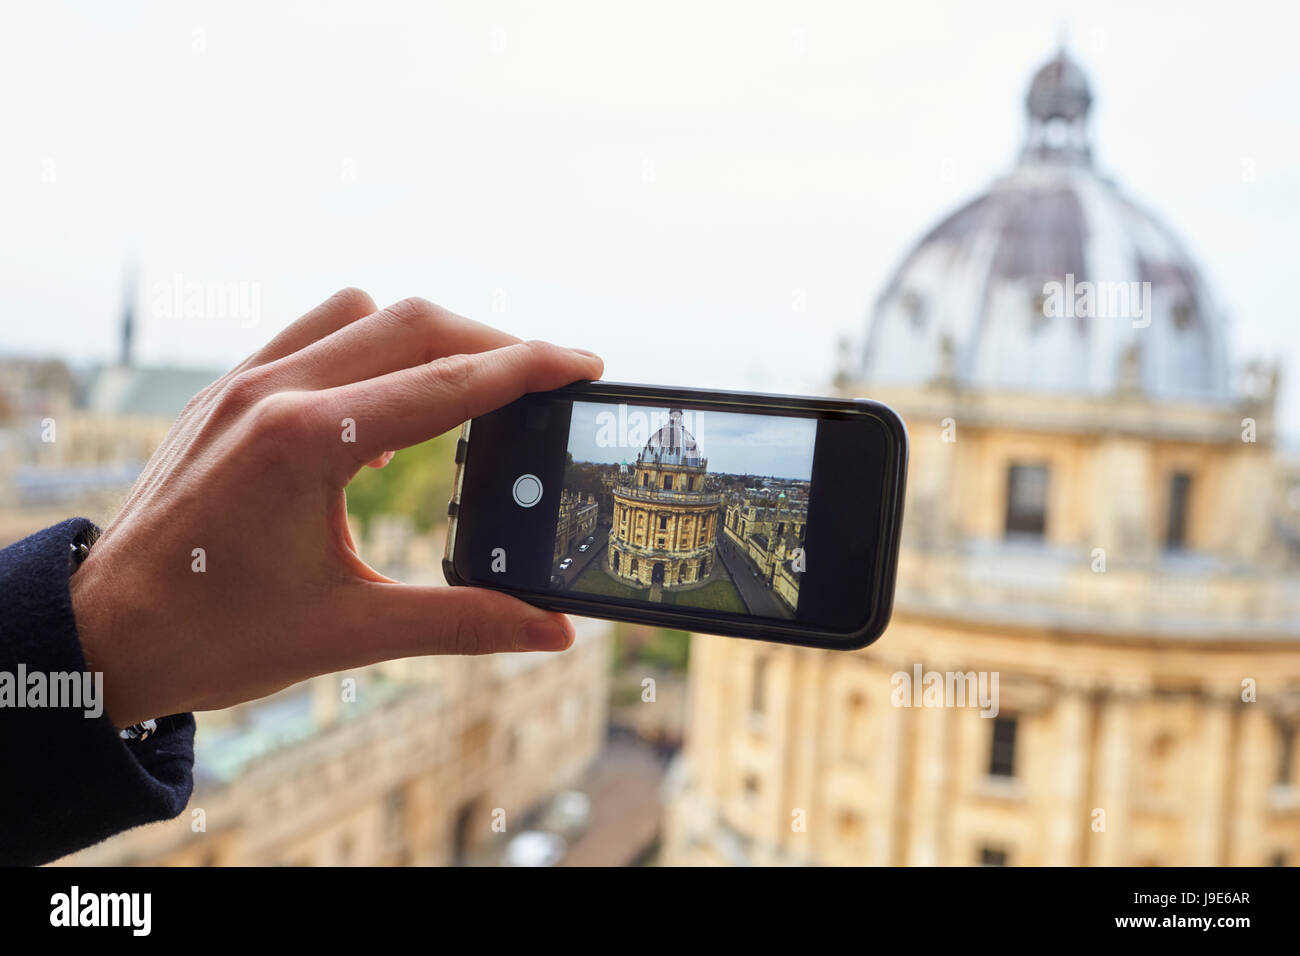 OXFORD/ UK- OCTOBER 26 2016: Tourist Taking Photo Of Radcliffe Camera In Oxford On Phone - Stock Image